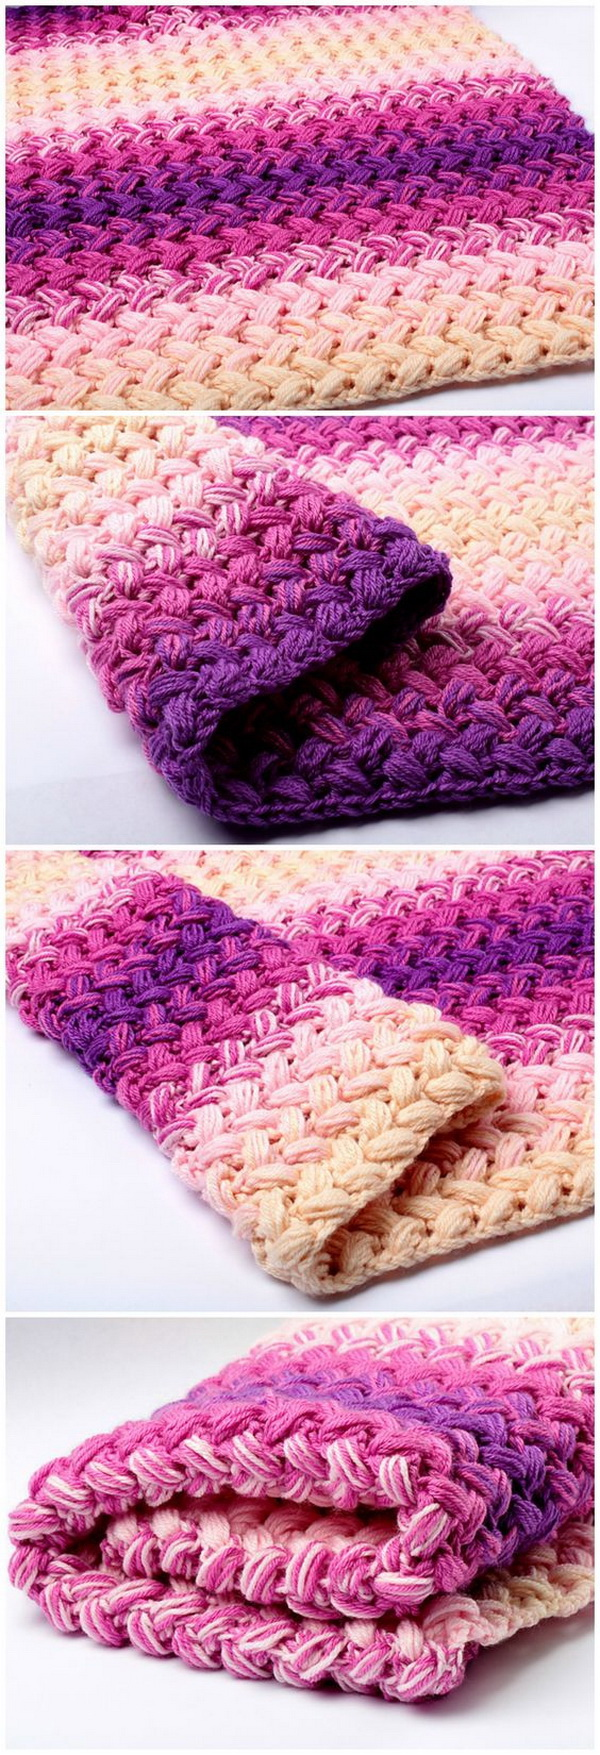 Quick And Easy Crochet Blanket Patterns For Beginners: Crochet Zig Zag Blanket.